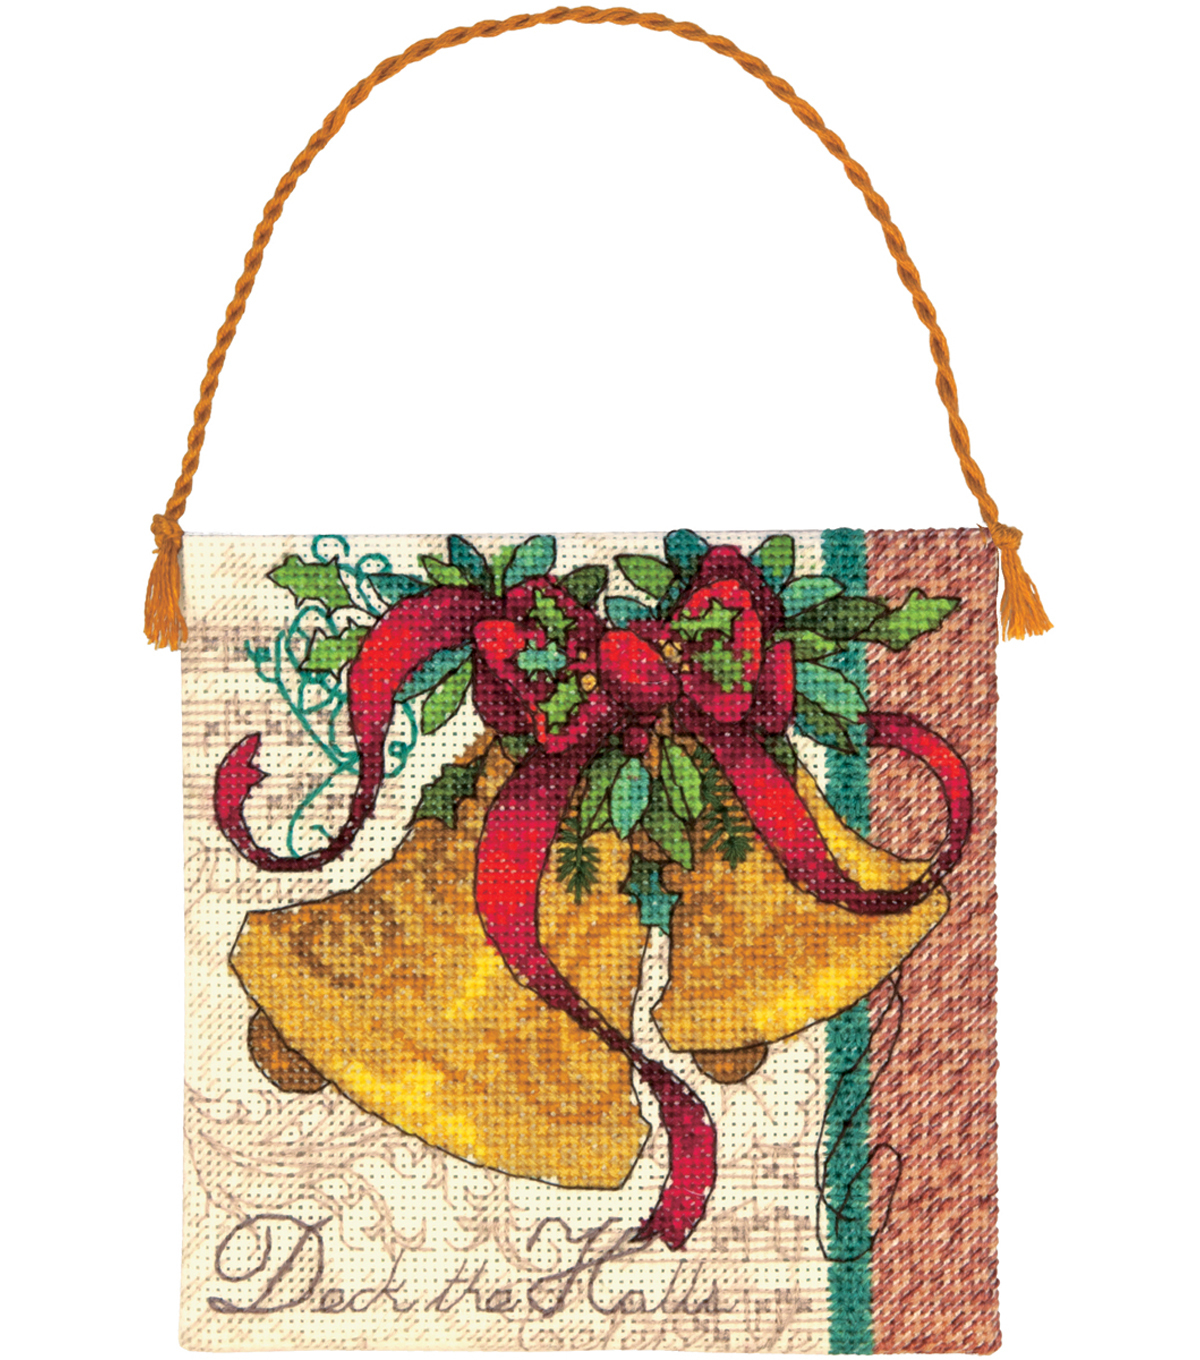 Gold Collection Petites Bells Ornament Counted Cross Stitch-4.25\u0022x4.25\u0022 18 Count